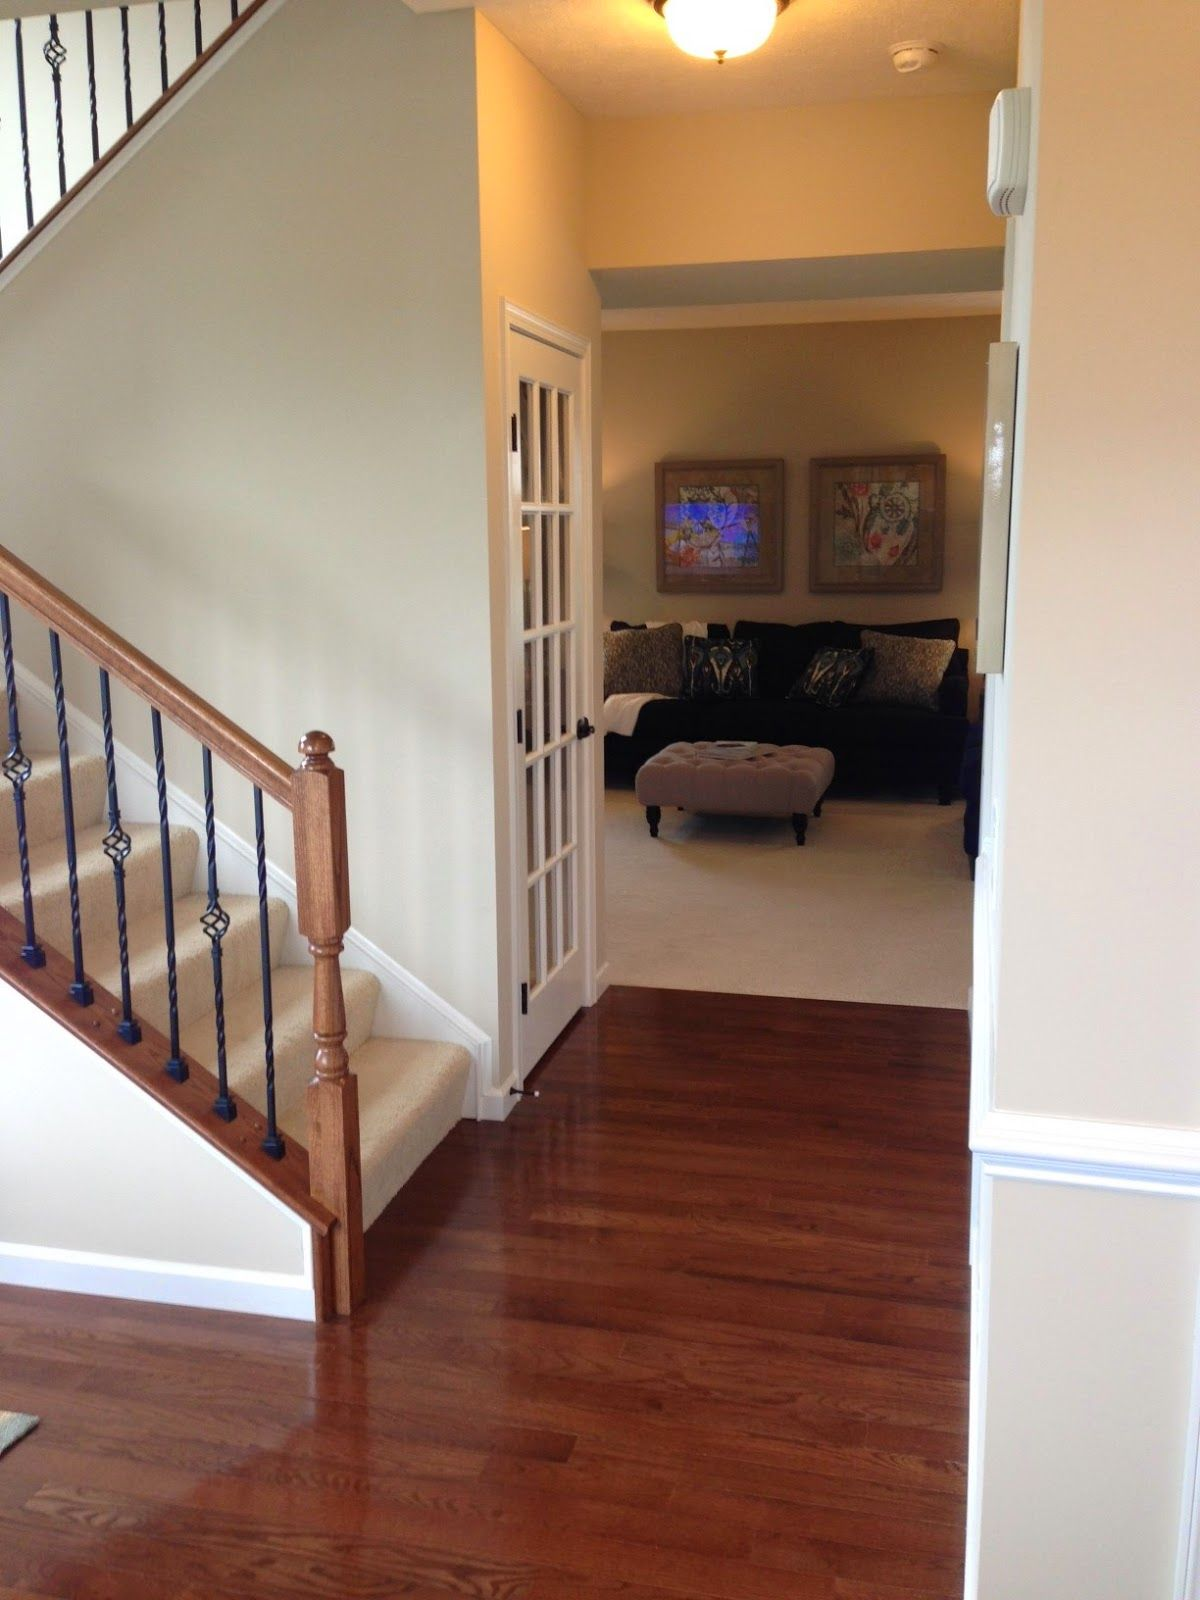 Our Blog About Building Our First Home A Venice With Ryan Homes